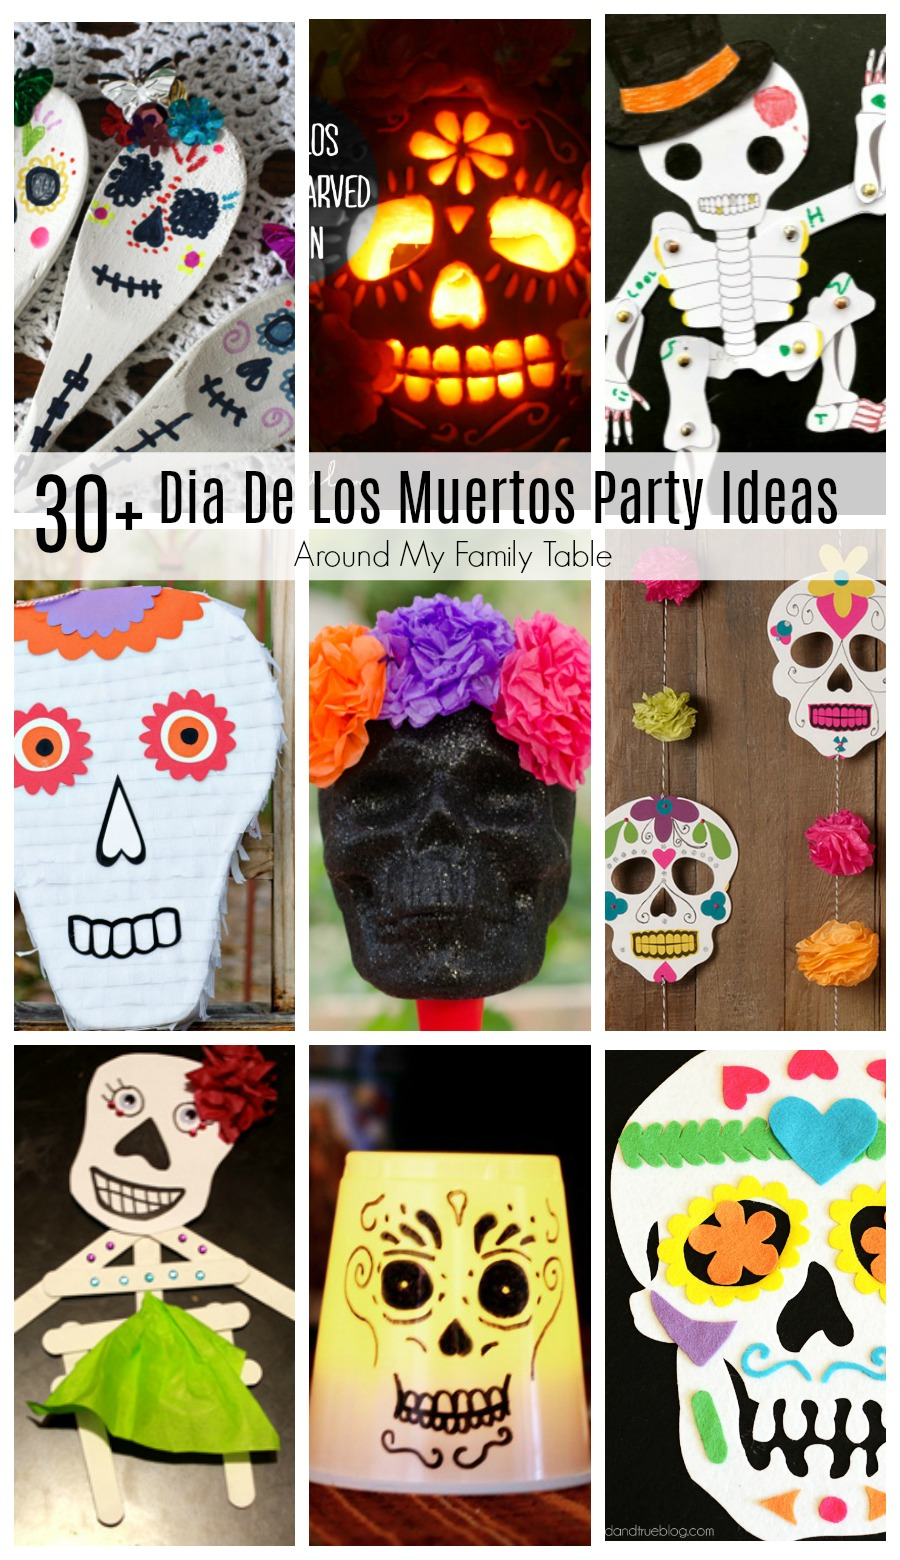 Celebrate Dia De Los Muertos (Day of the Dead) with these colorful & festive Dia De Los Muertos Party Ideas.